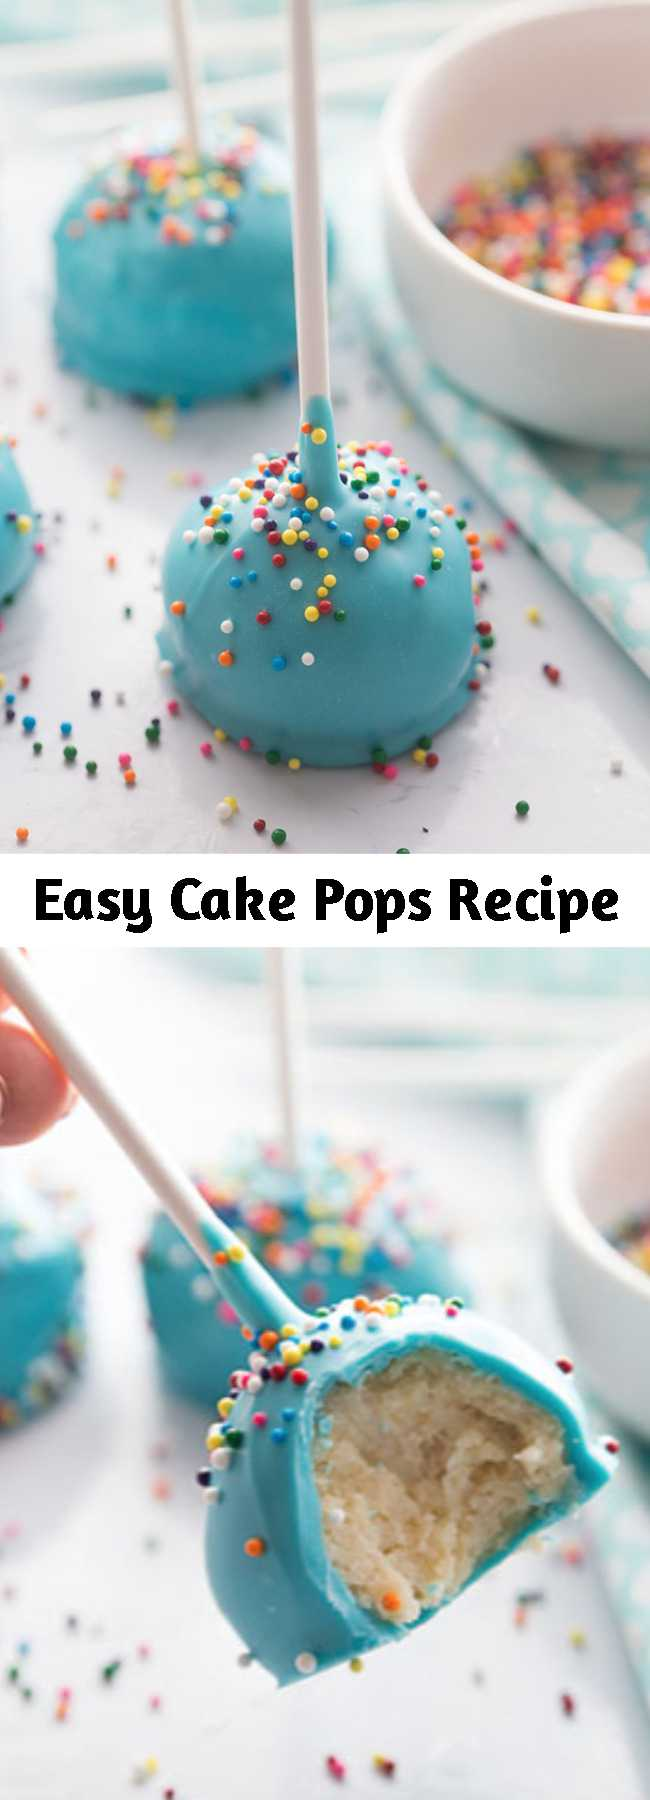 Easy Cake Pops Recipe - How to Make Cake Pops - such a fun and easy treat to make with kids! Perfect to make for birthday parties too! #recipes #kidsrecipes #snacks #treats #bestideasforkids